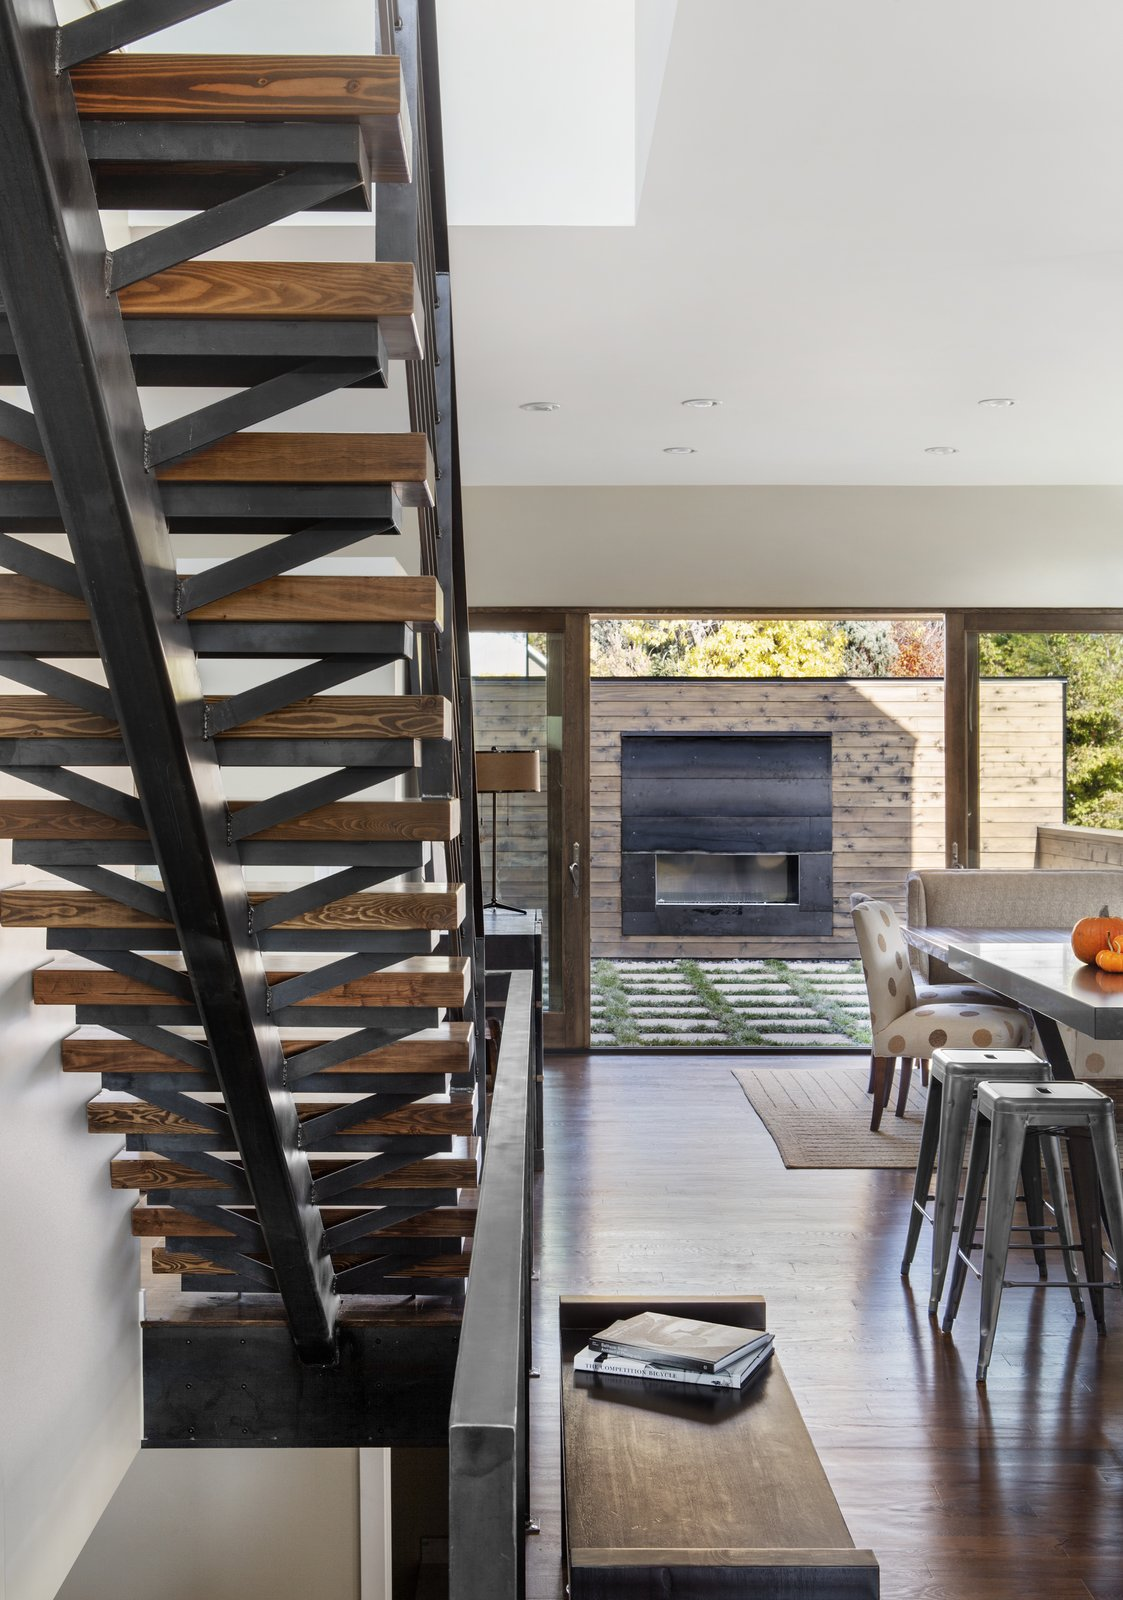 "Mitchell wanted to detail the solid oak staircase with that same sense of openness, even though its materials are heavy. ""We used a lot of raw steel and wood on the interior of the home,"" Mitchell said. ""This carries the authenticity of real materials from the building exterior to the building interior."" A custom fireplace sits on the patio."